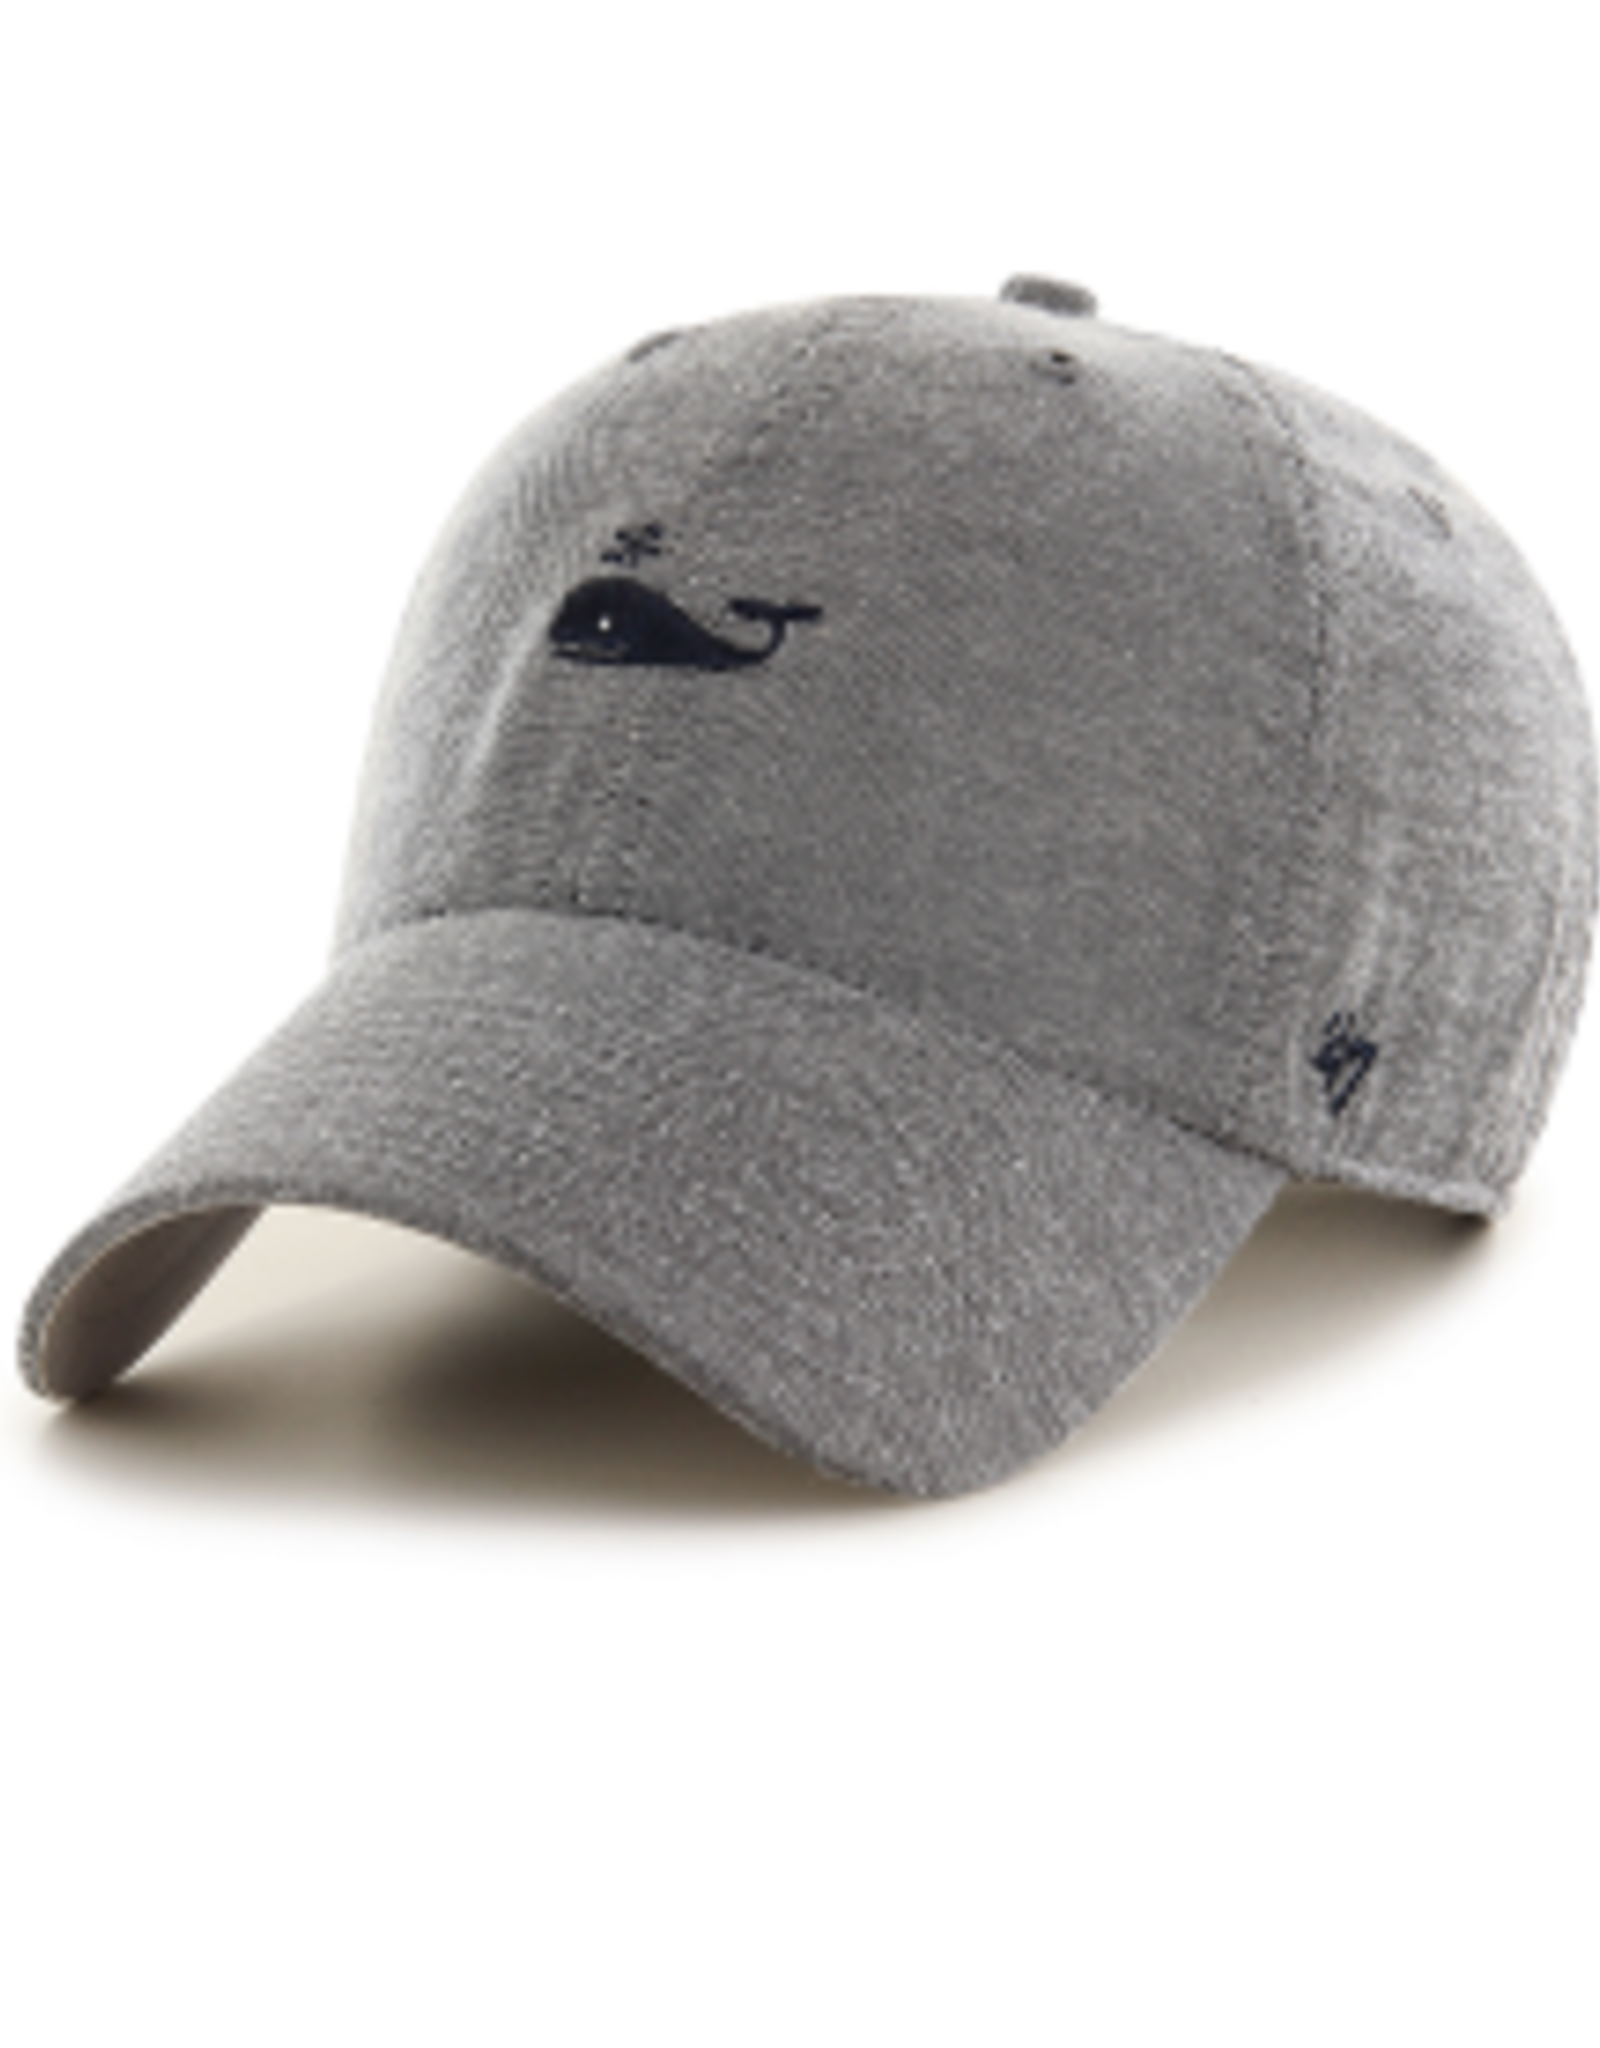 """47 Brand 47 Hat """"Monument"""" Happy Whale"""